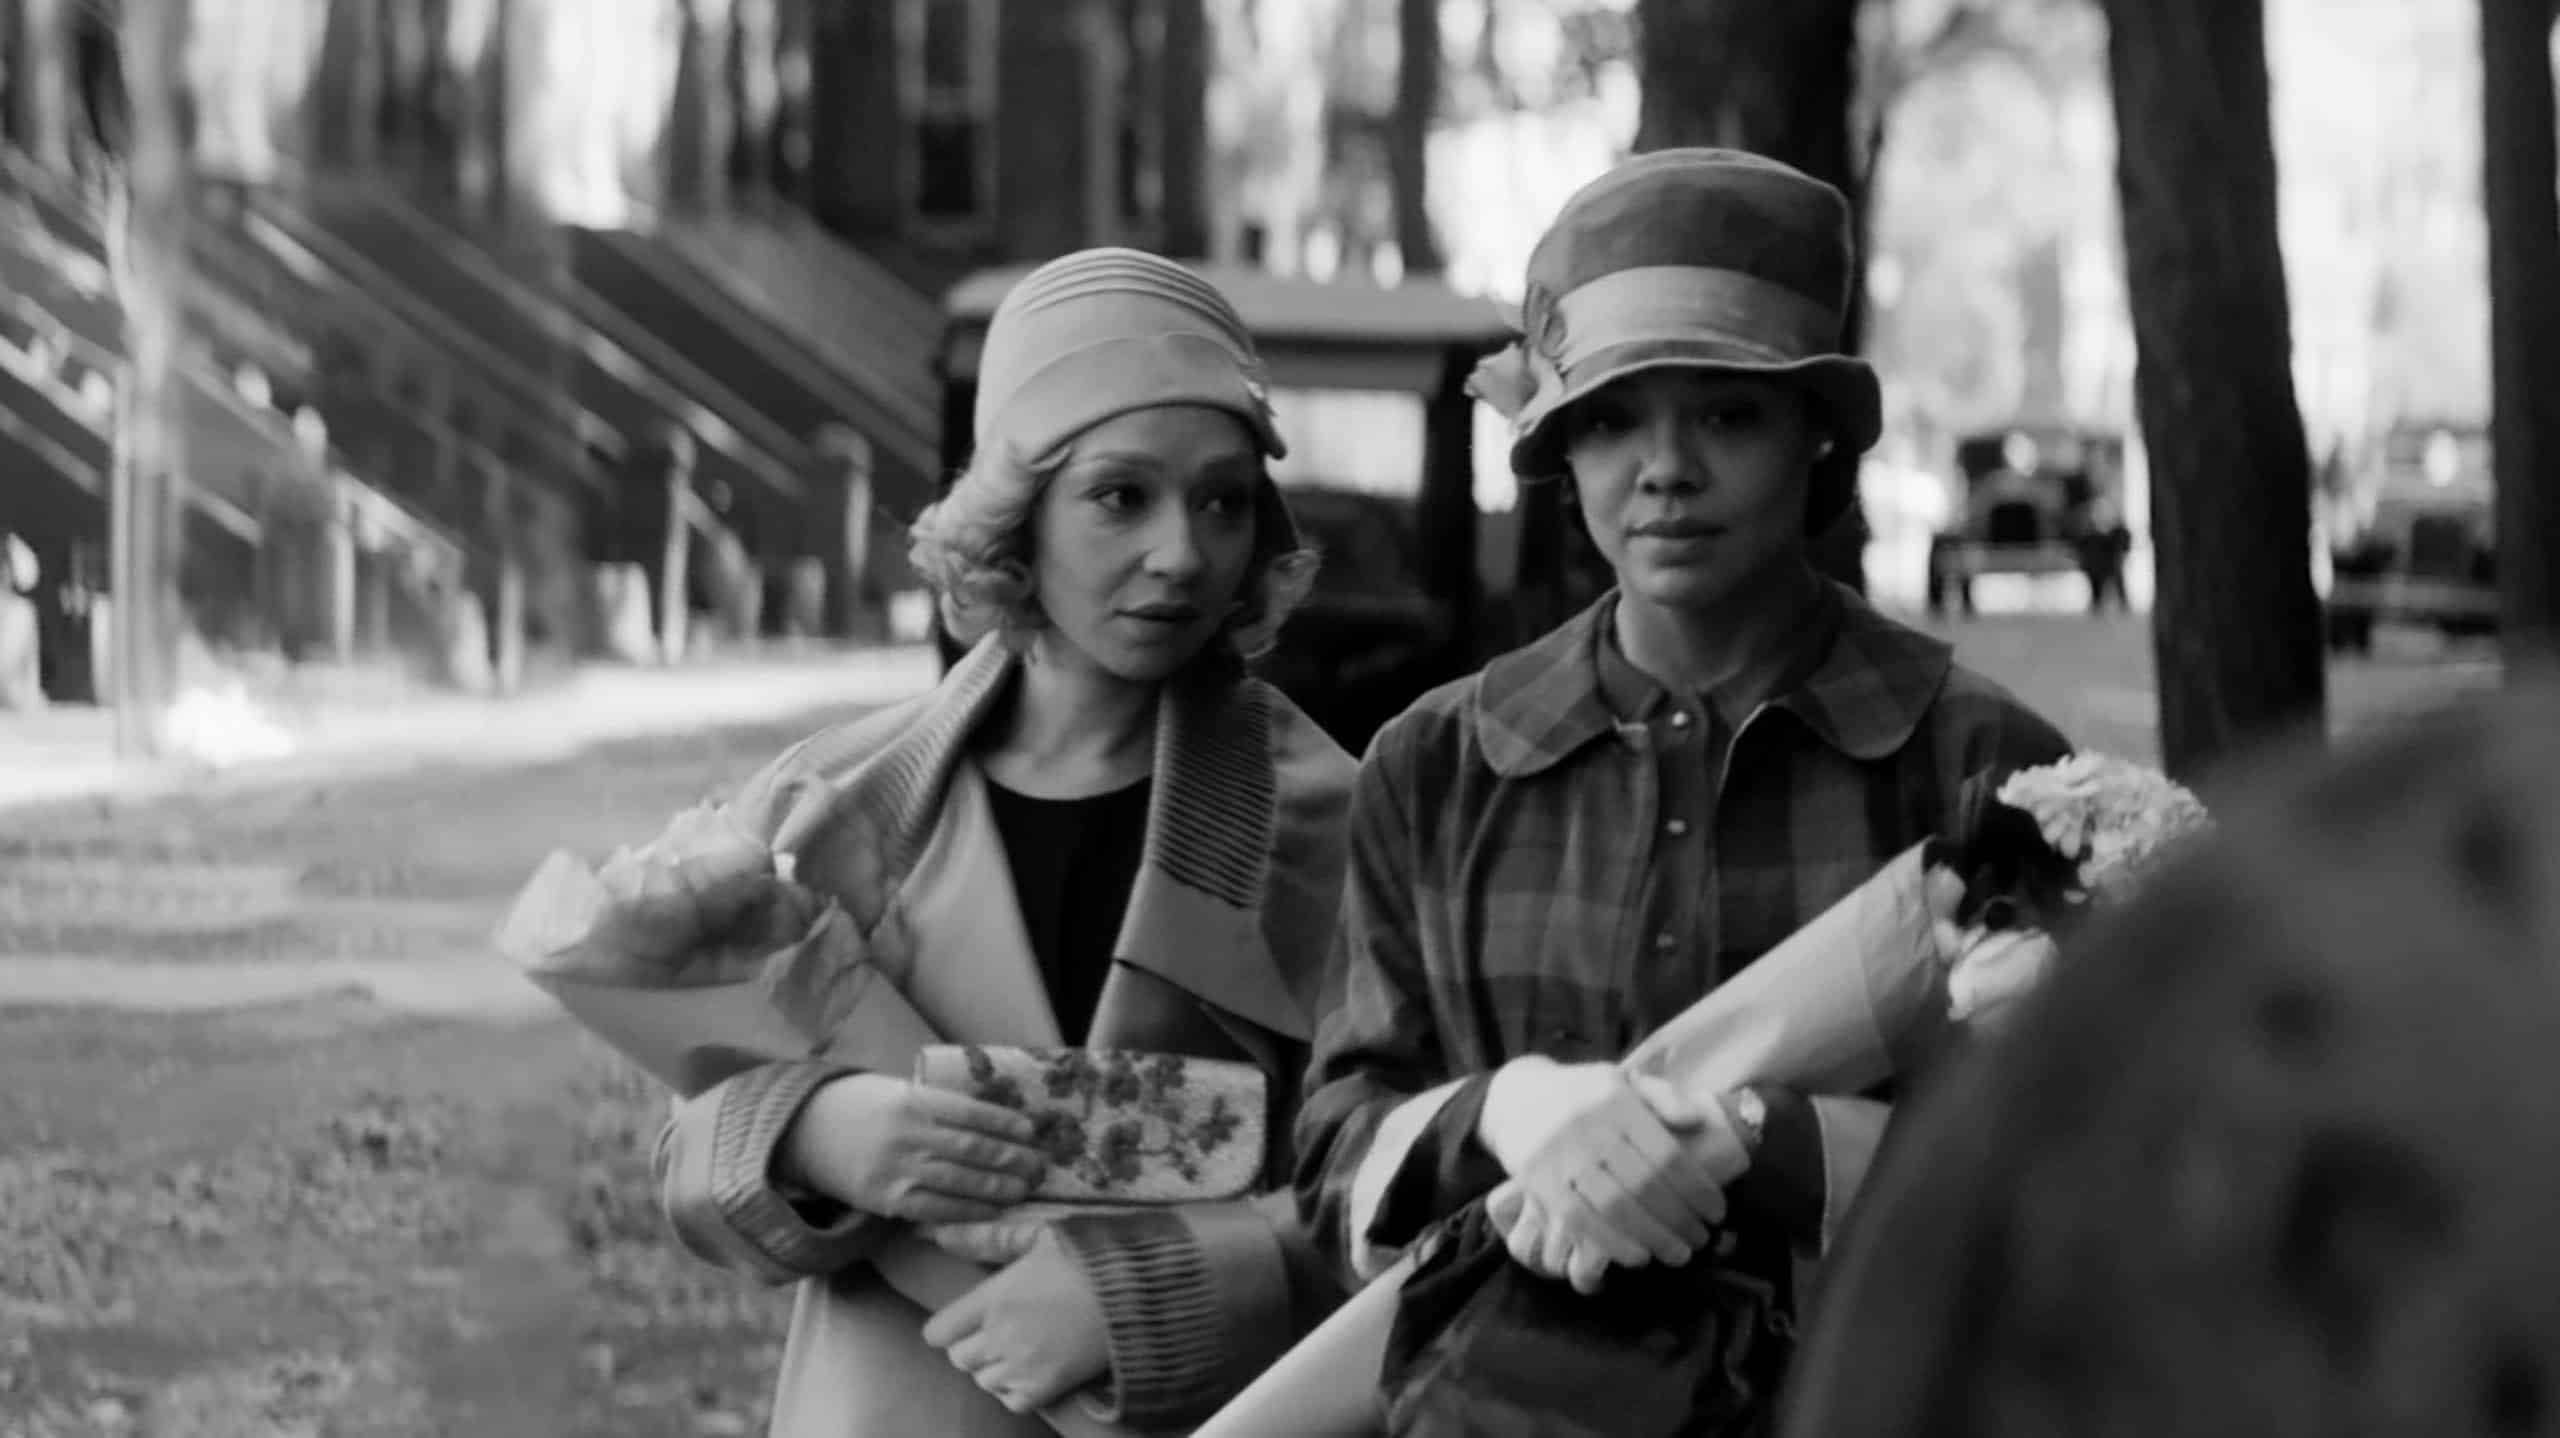 Clare (Ruth Negga) and Irene (Tessa Thompson) walking together on the street